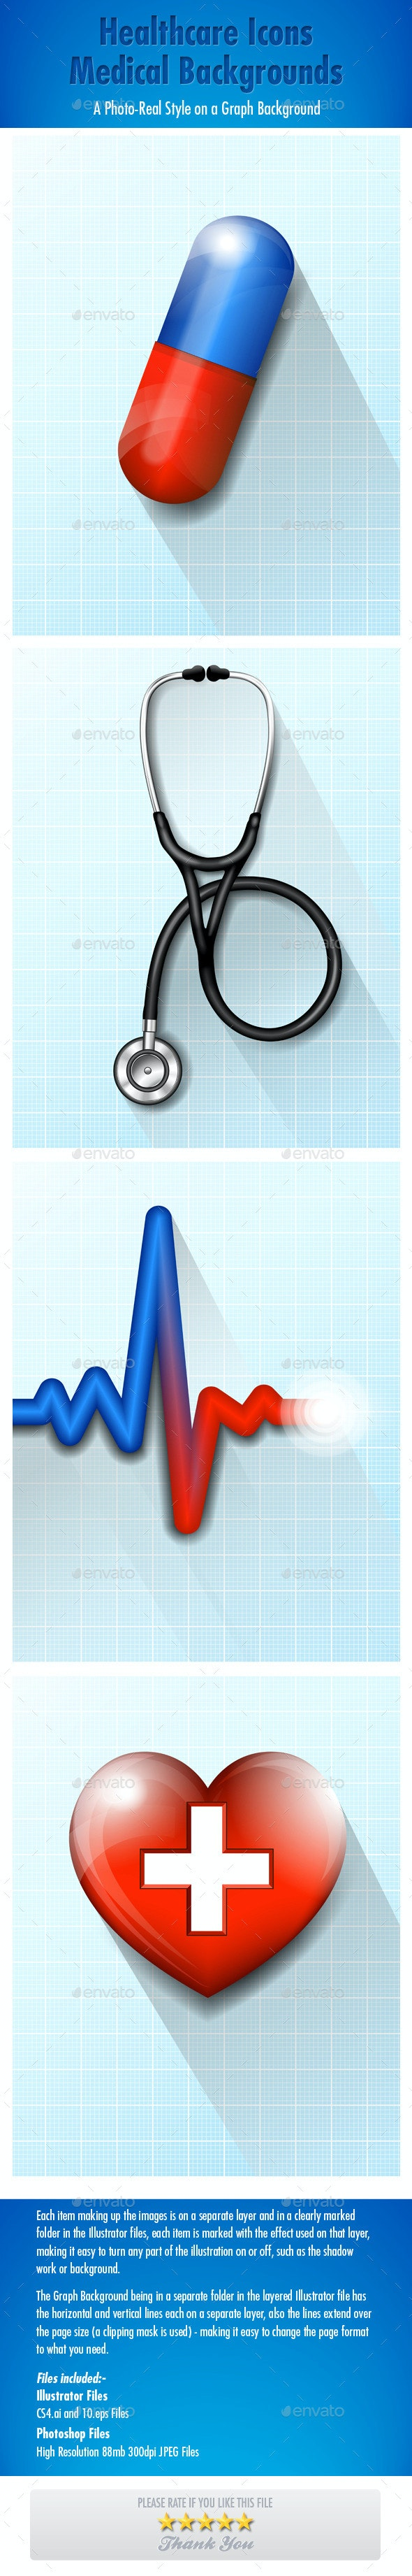 Healthcare Icons Medical Backgrounds - Health/Medicine Conceptual